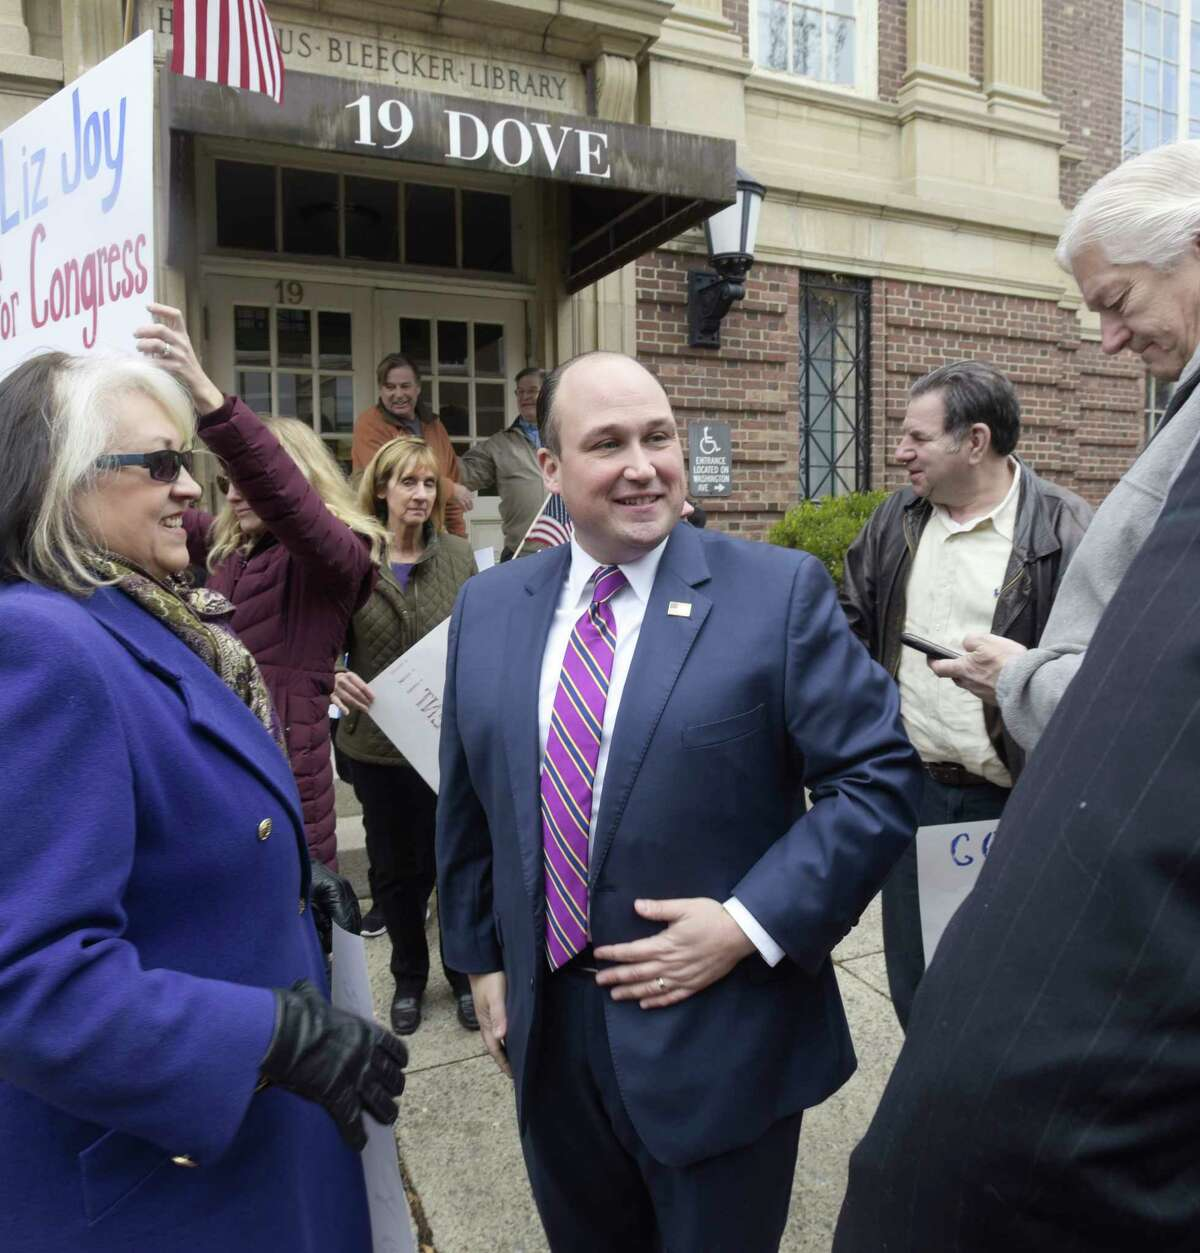 New York Republican Party Chairman Nick Langworthy, XXX, holds a press conference outside the Albany office of Congressman Paul Tonko on Monday, Nov. 25, 2019, in Albany, N.Y. (Paul Buckowski/Times Union)